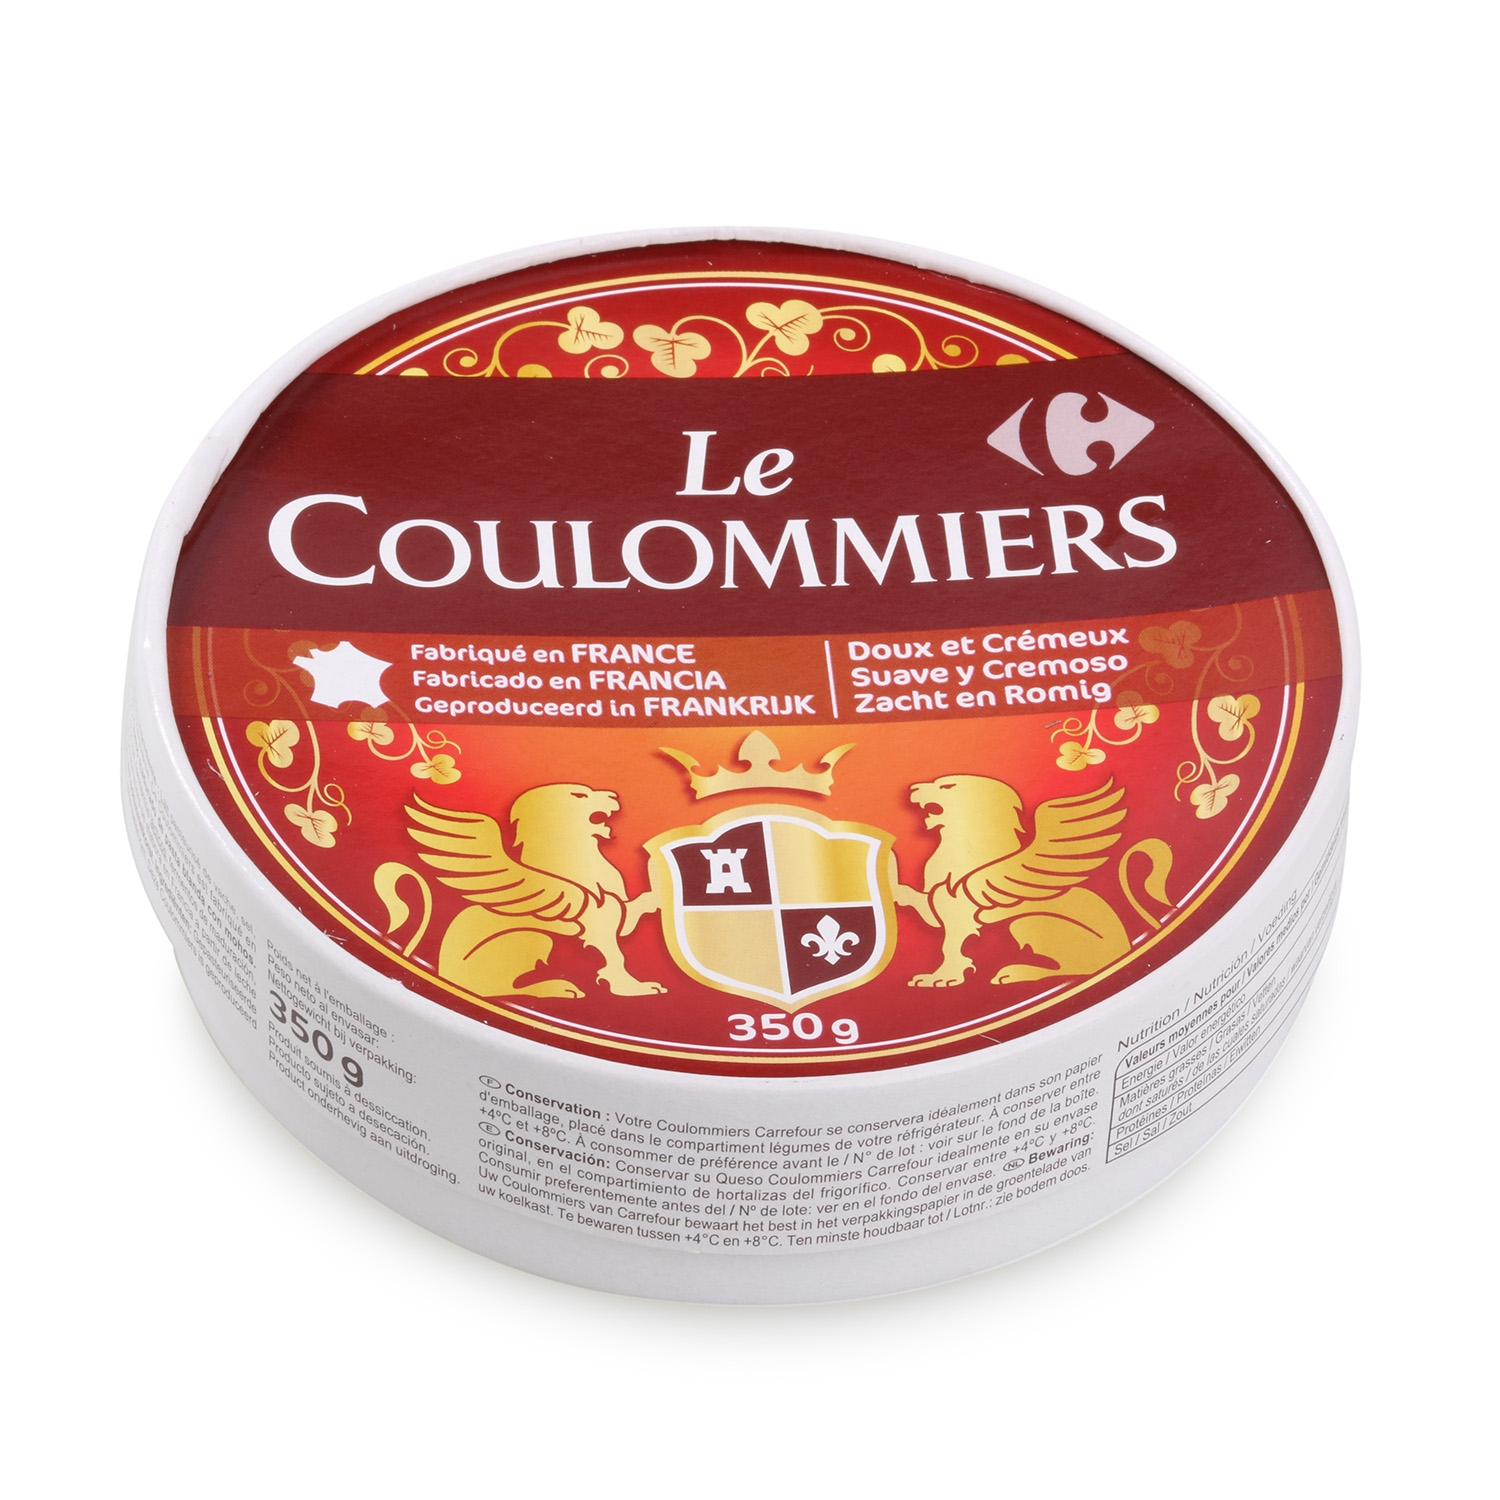 Queso coulomiers